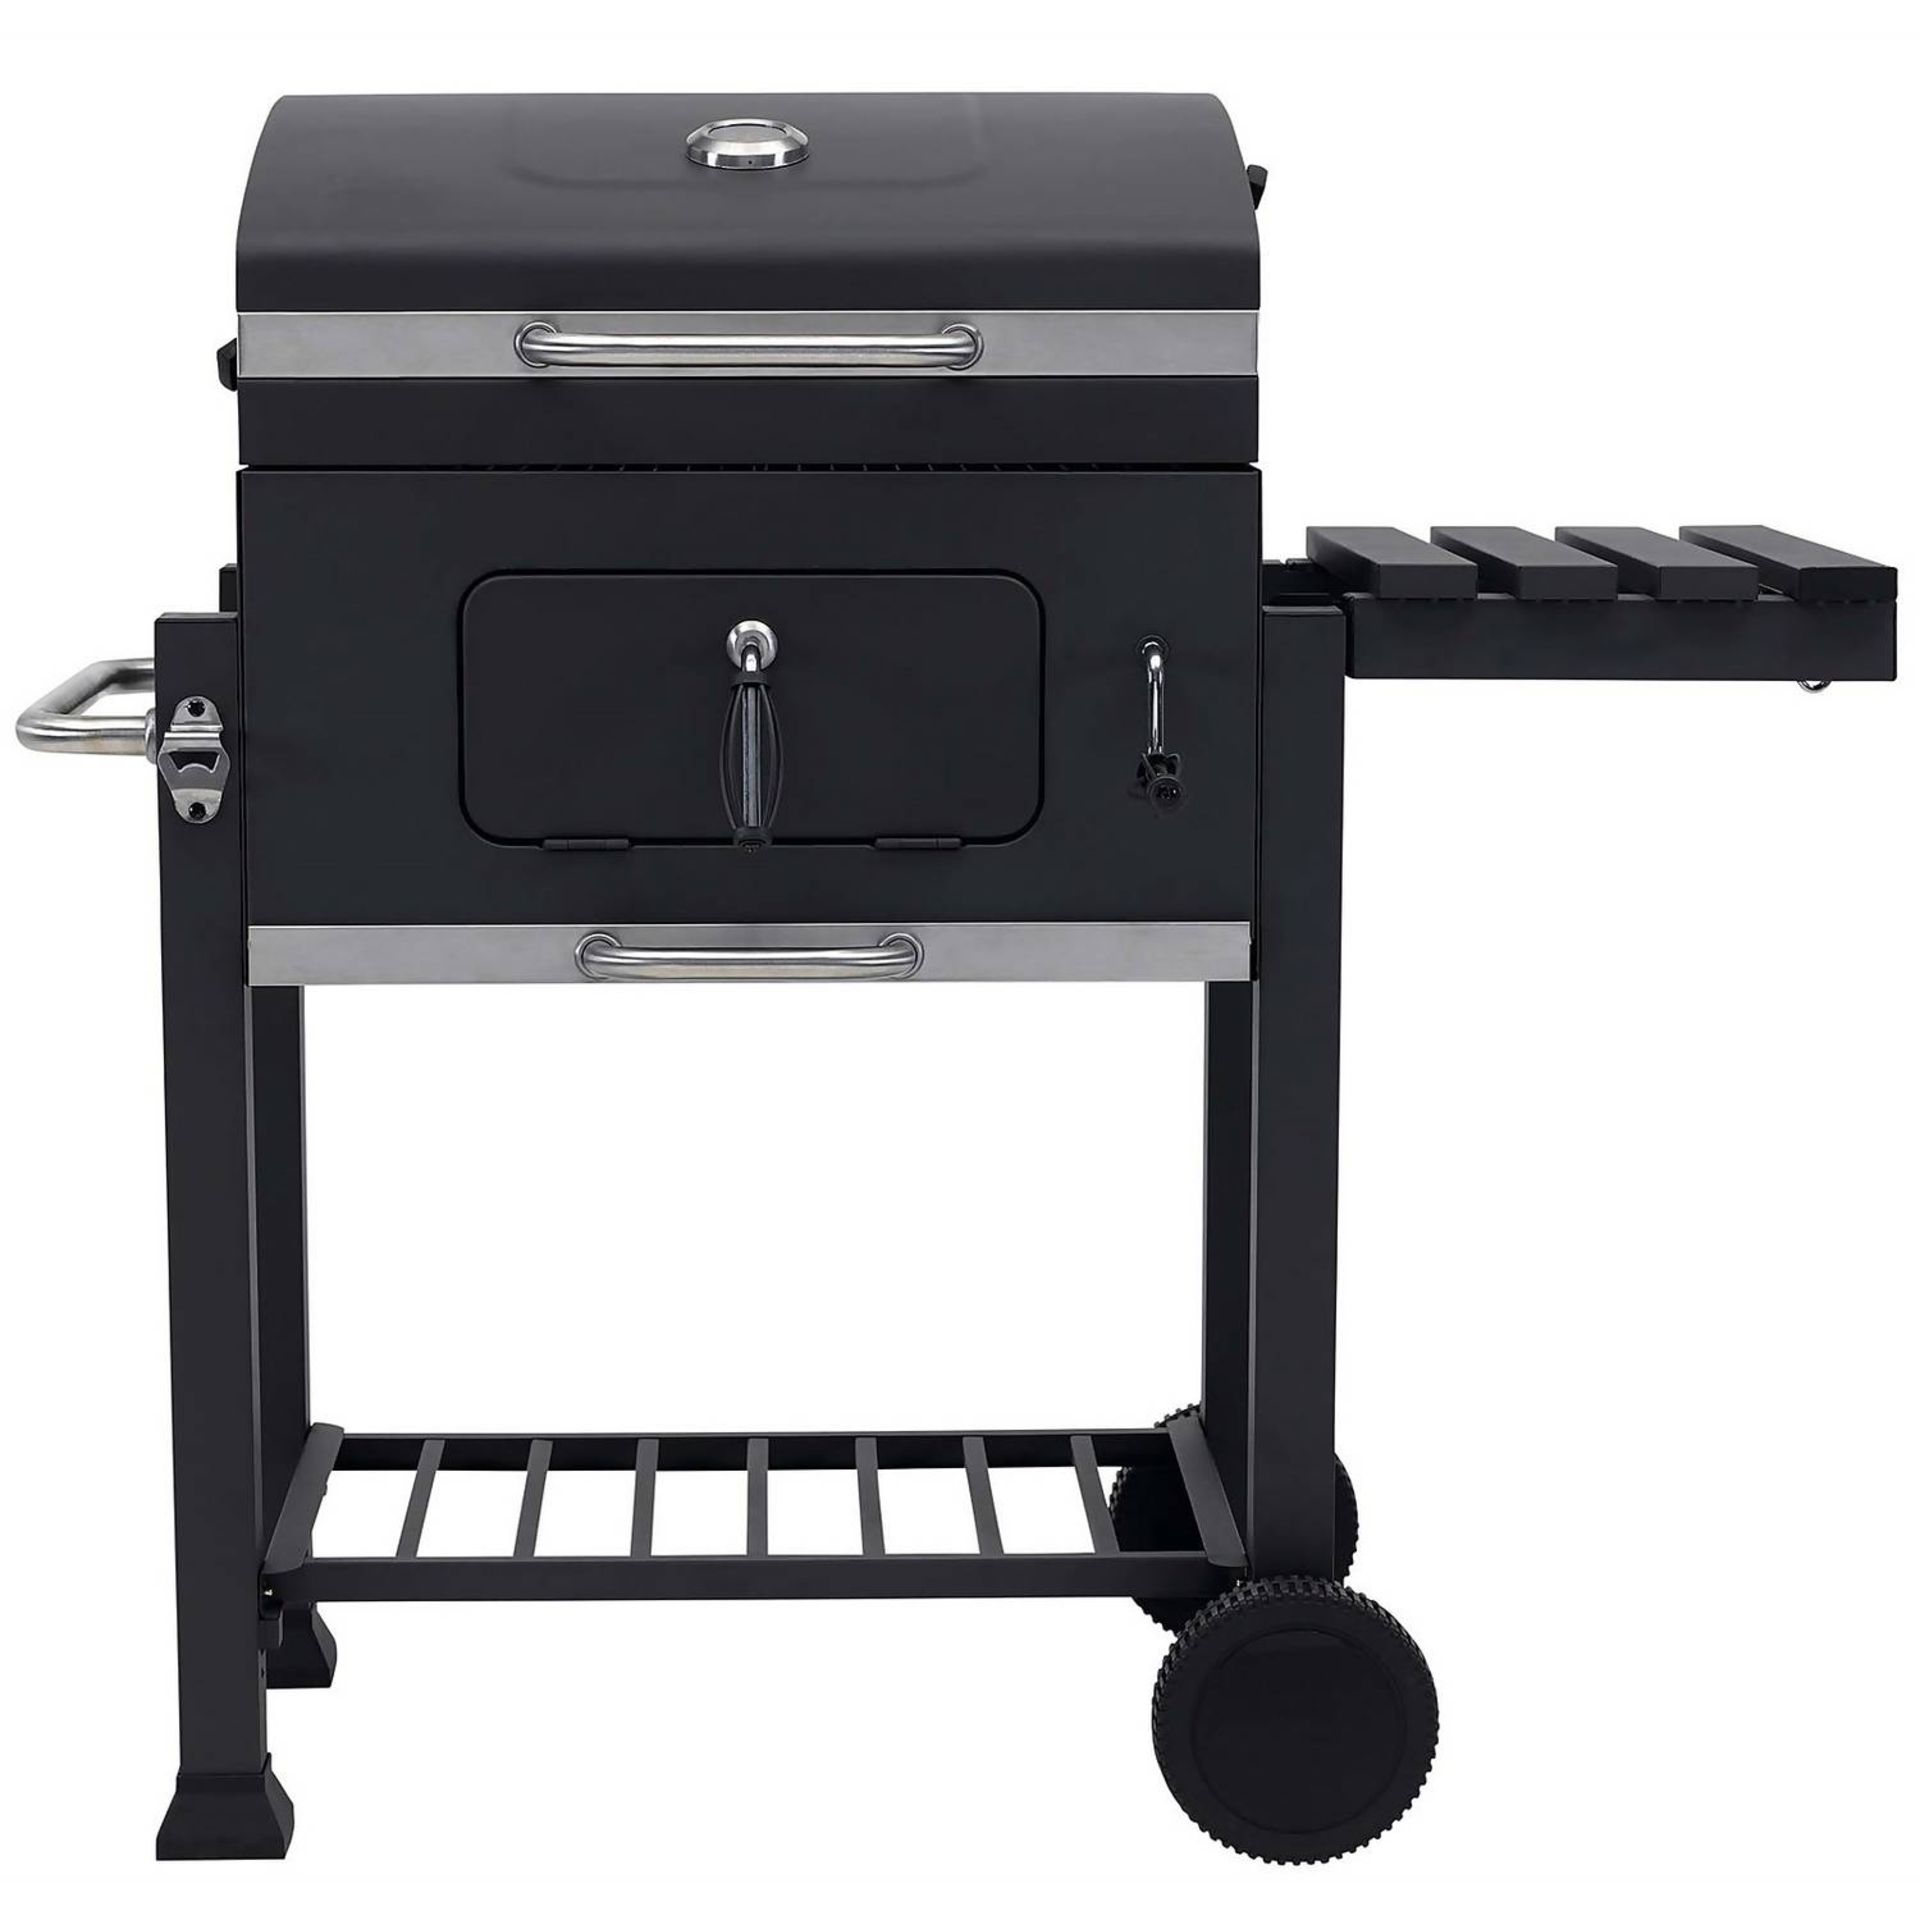 (P8) 1x Texas Franklin Charcoal BBQ. RRP £180.00. New, Sealed Unit With Slight Box Damage. - Image 2 of 3